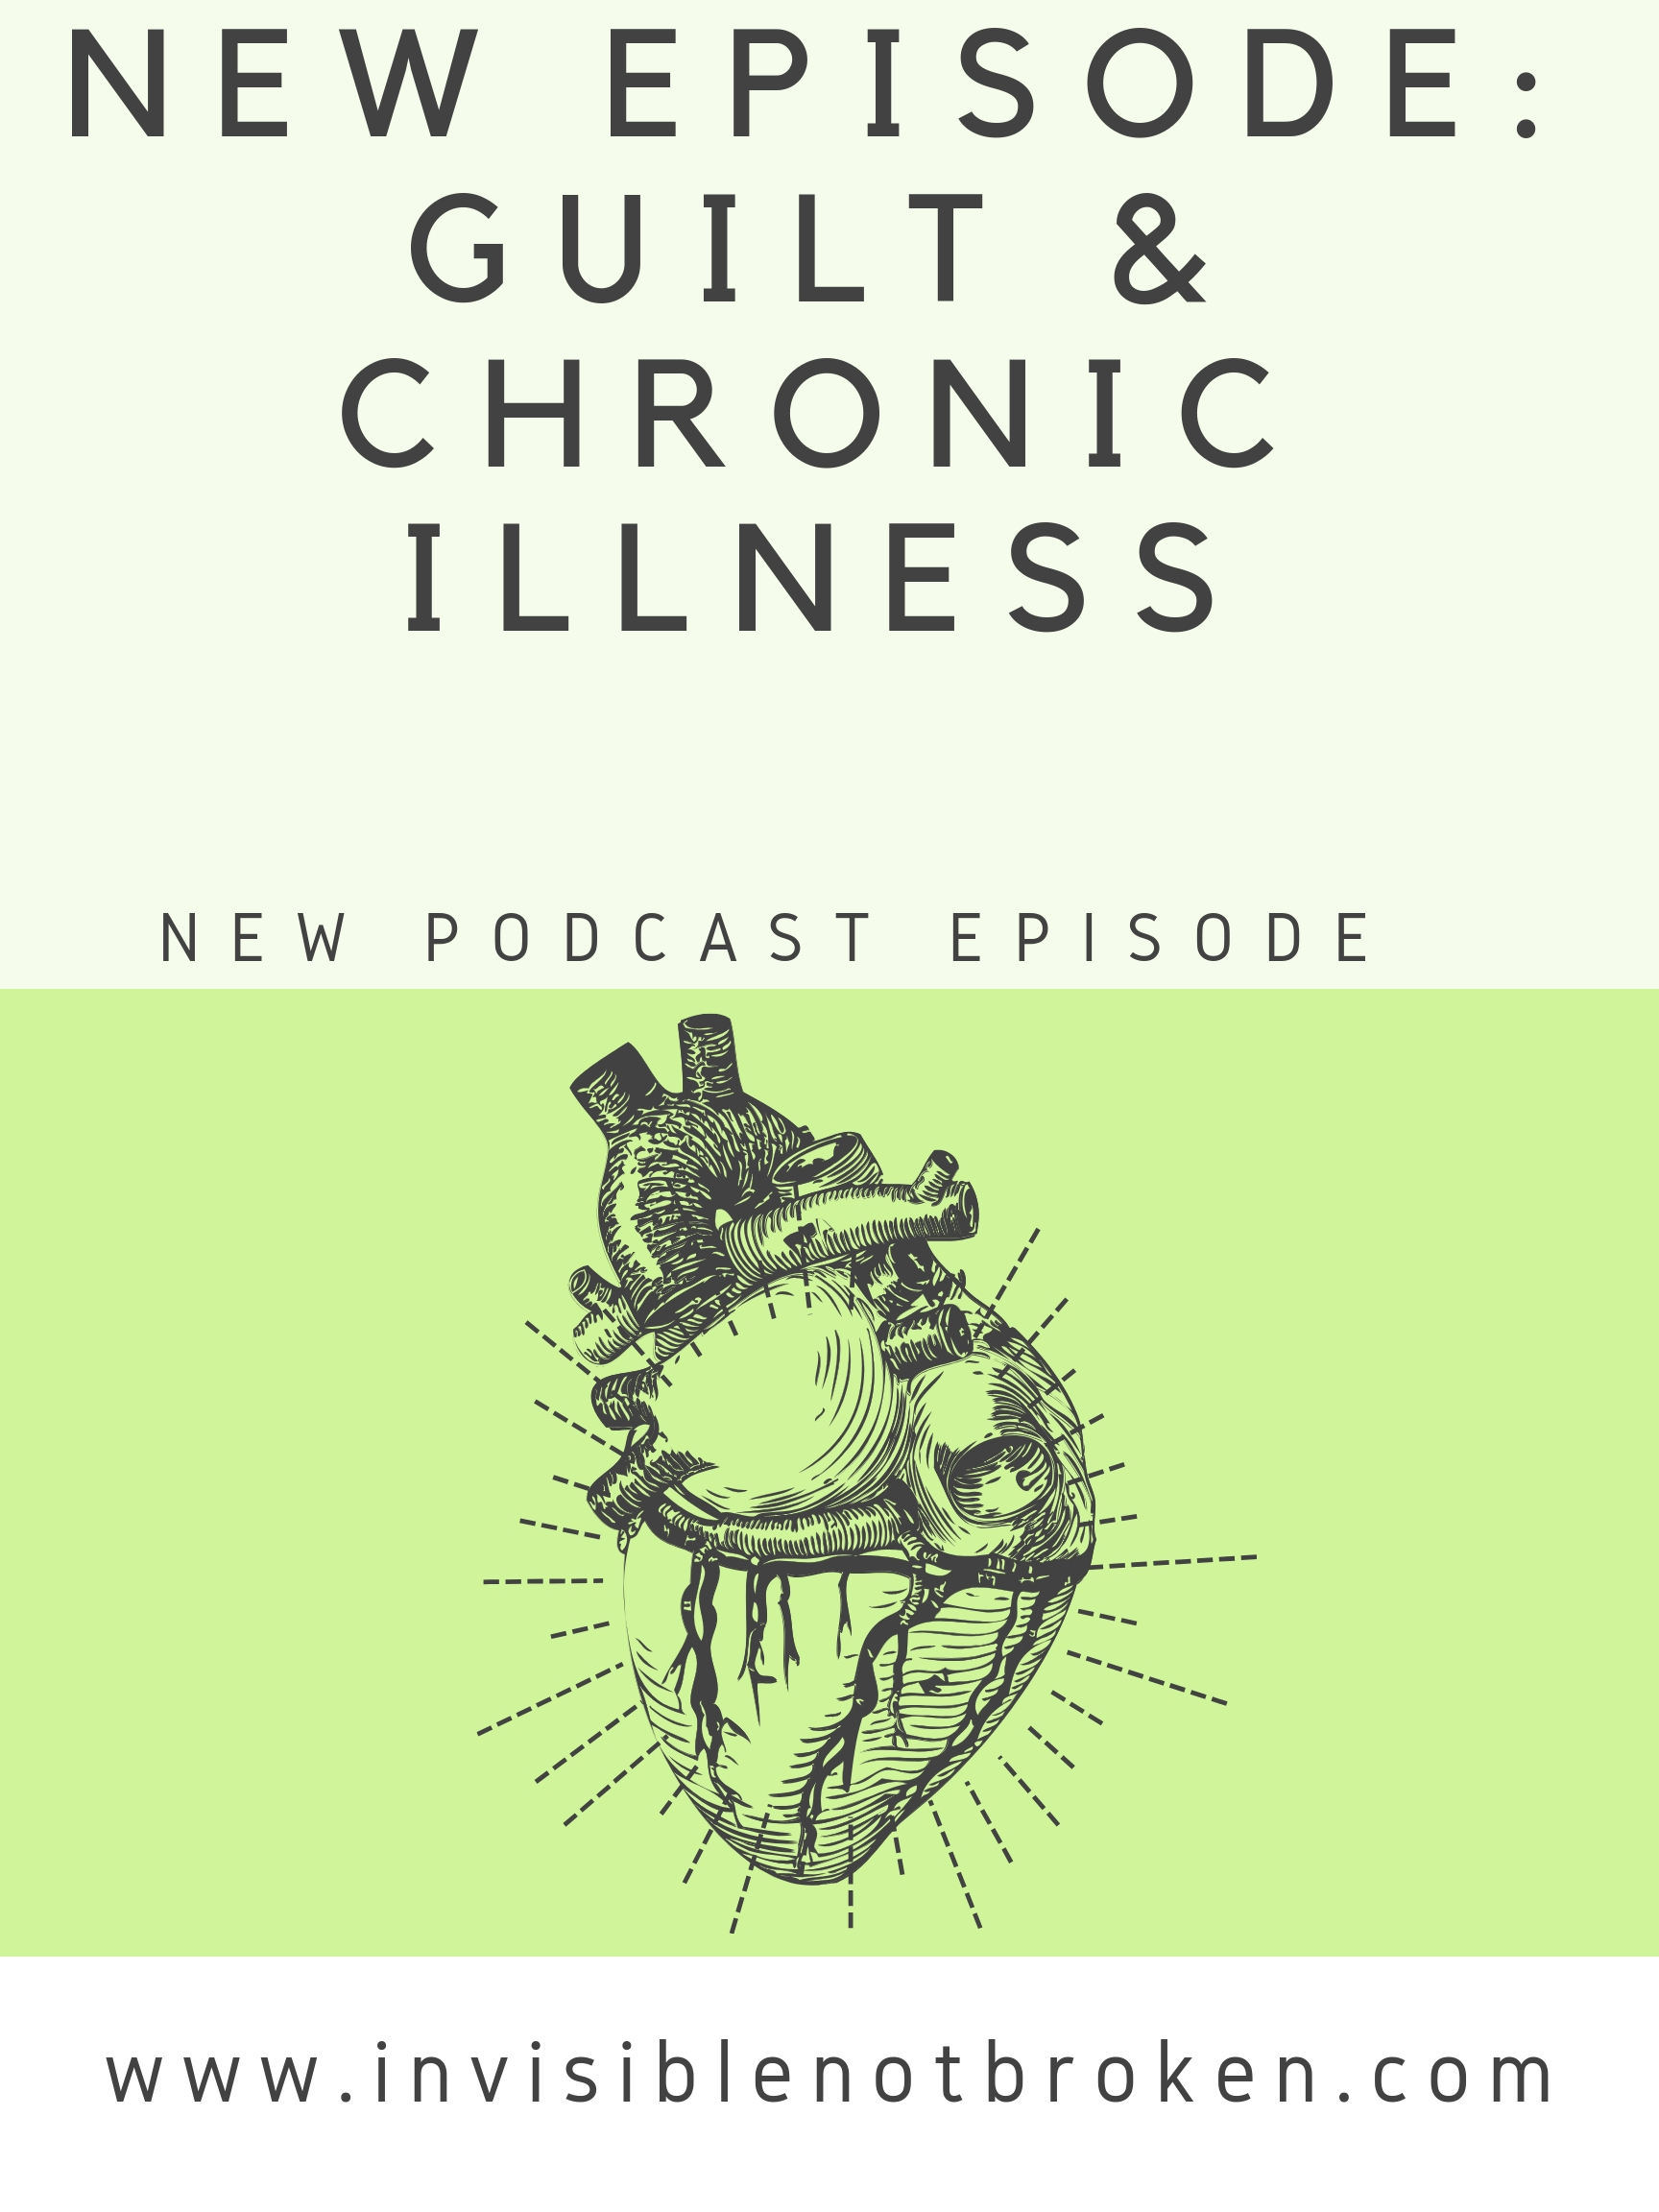 New Chronic Illness Podcast Episode: Guilty Party: Guilt and Chronic Illness Featuring Monica Michelle and Kyros Starr